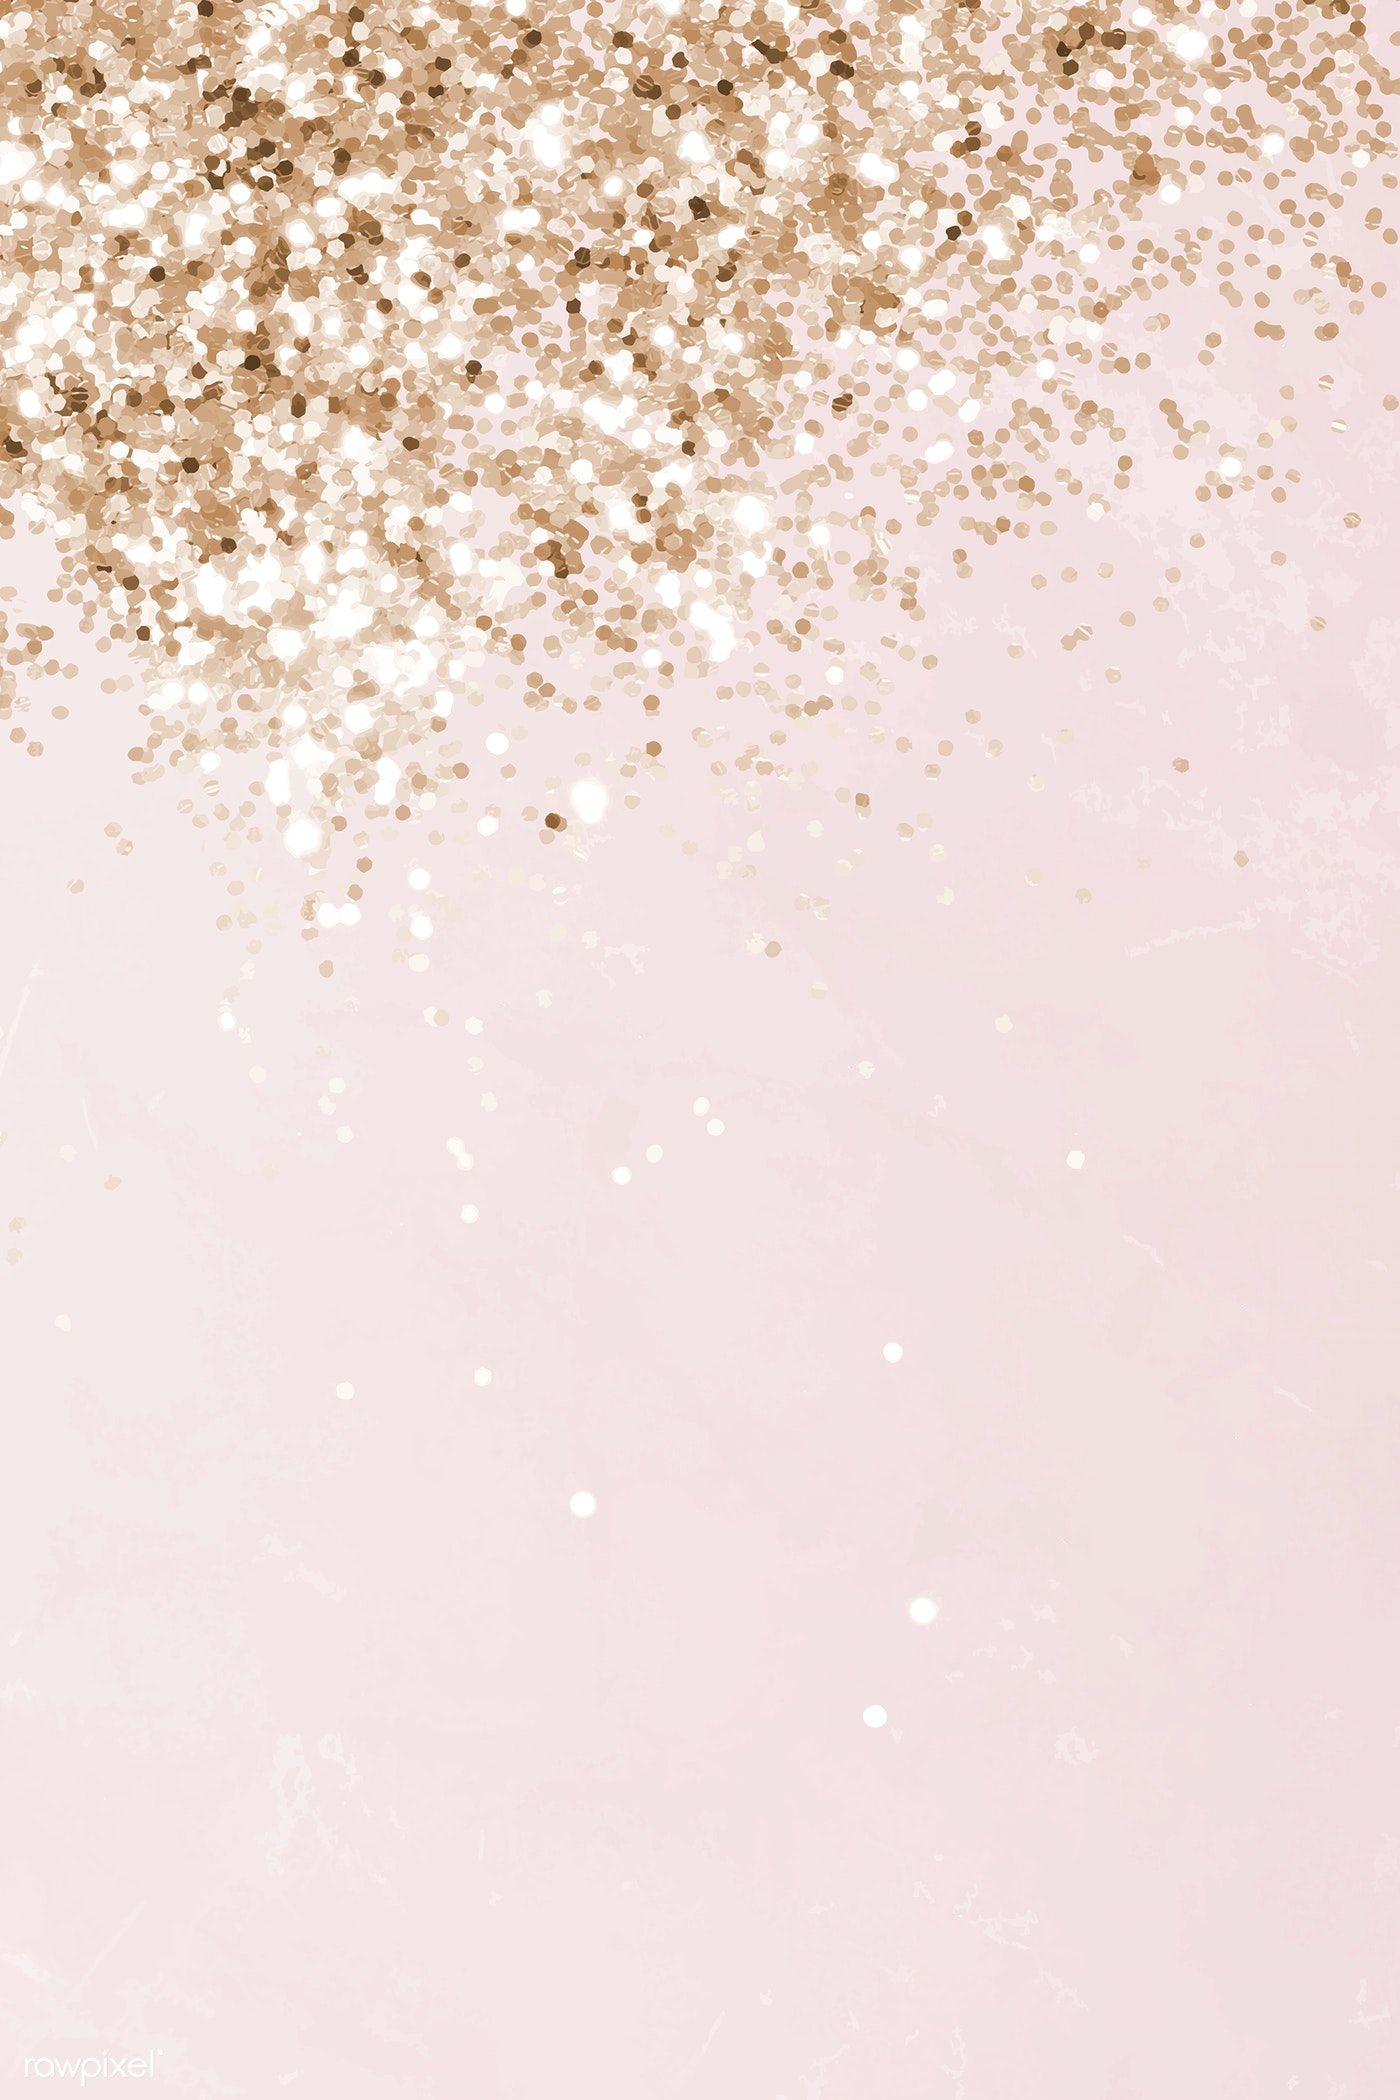 Pink and gold glittery pattern background vector   premium image by rawpixel.com